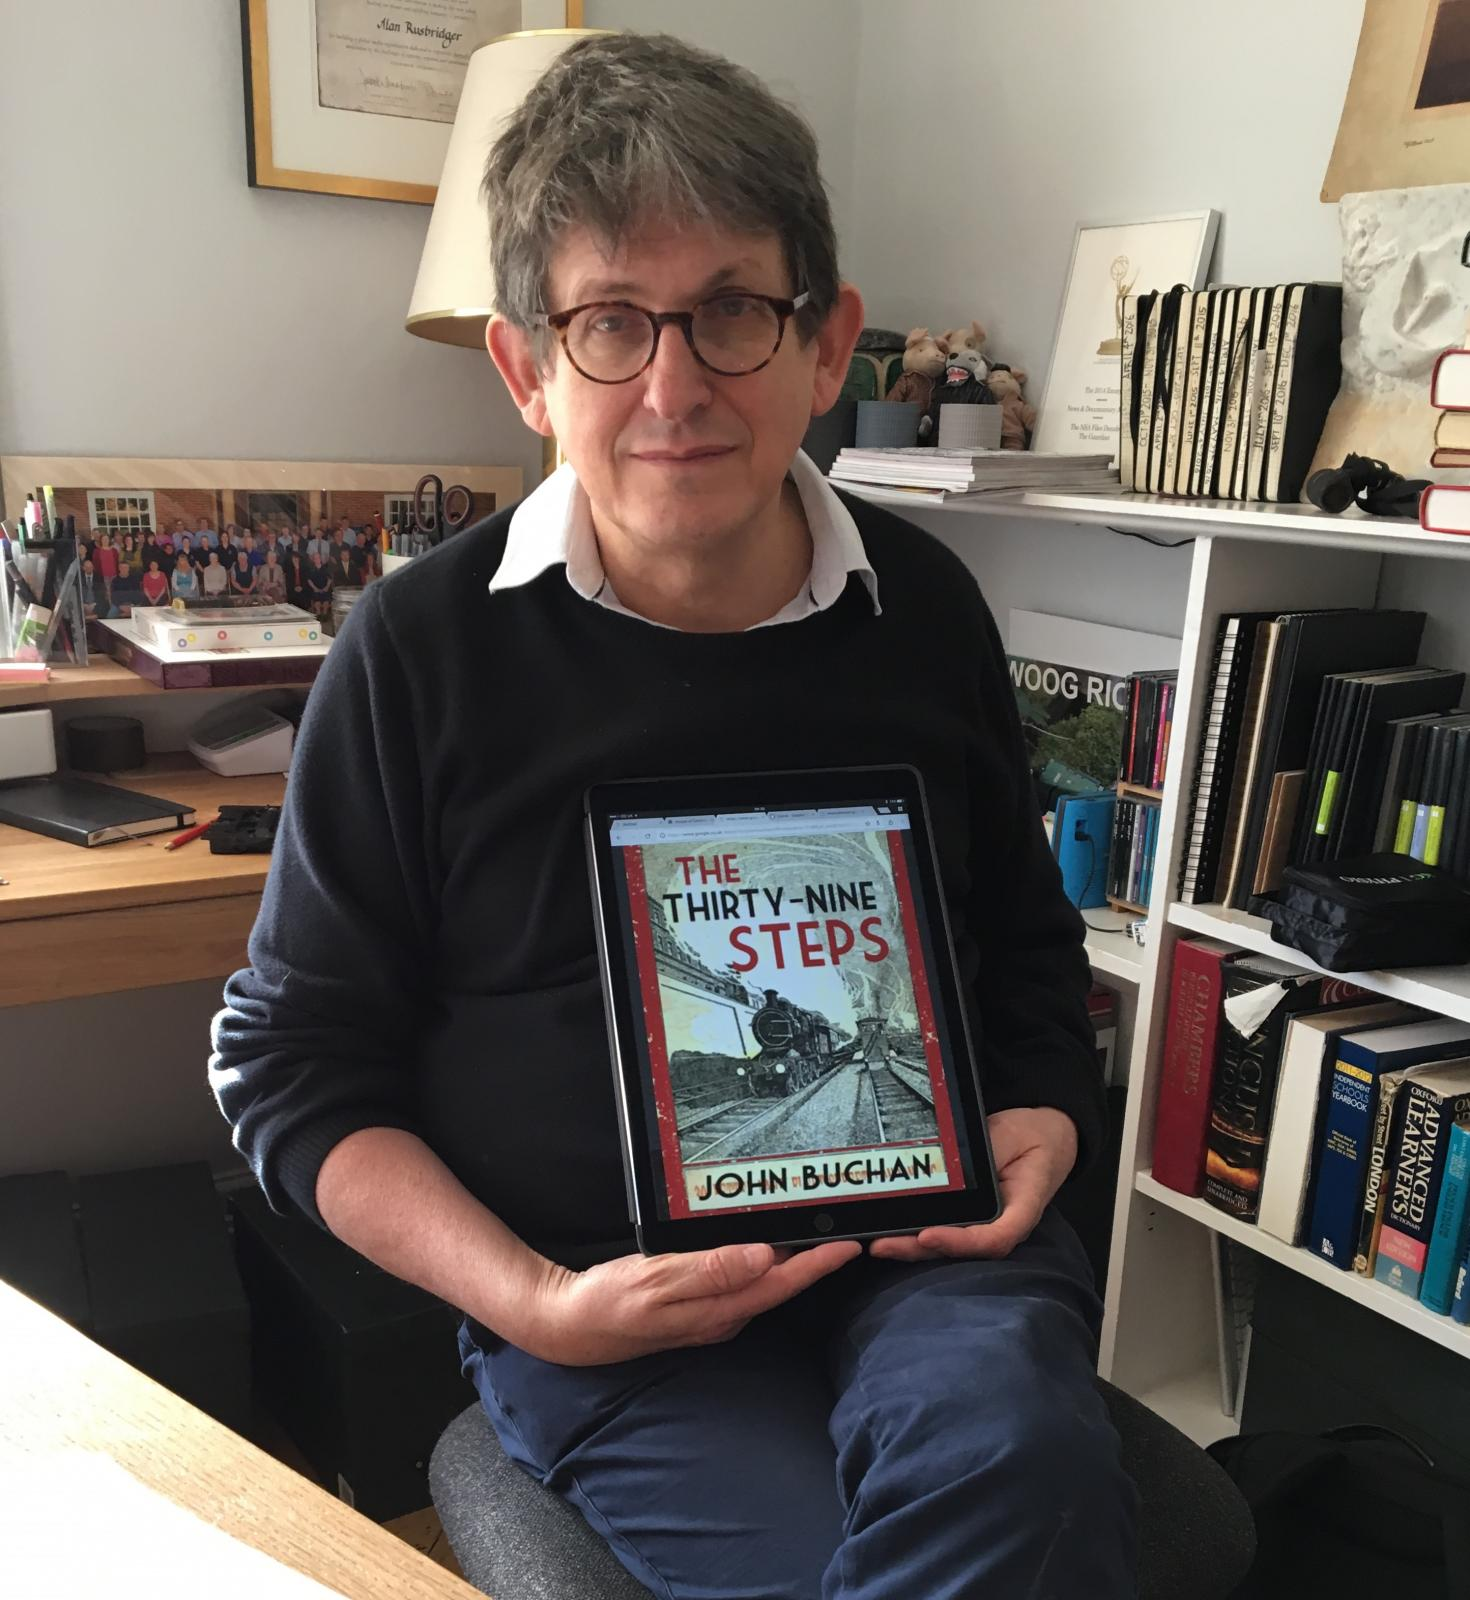 Our Principal, Alan Rusbridger, with his recommendation for World Book Day 2017